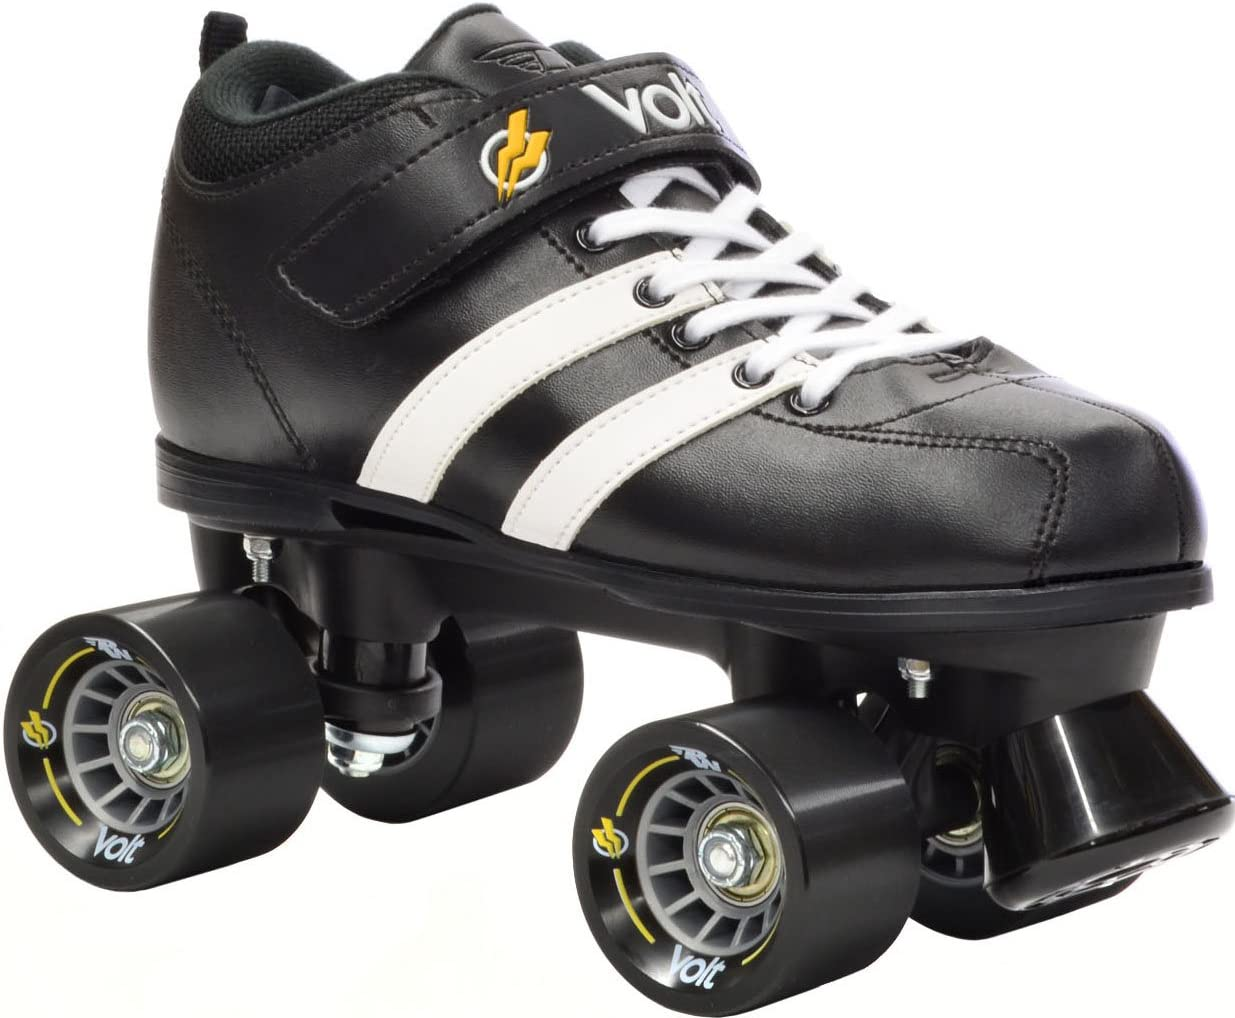 Riedell RW Volt Quad Roller Derby Speed Skates with White Laces